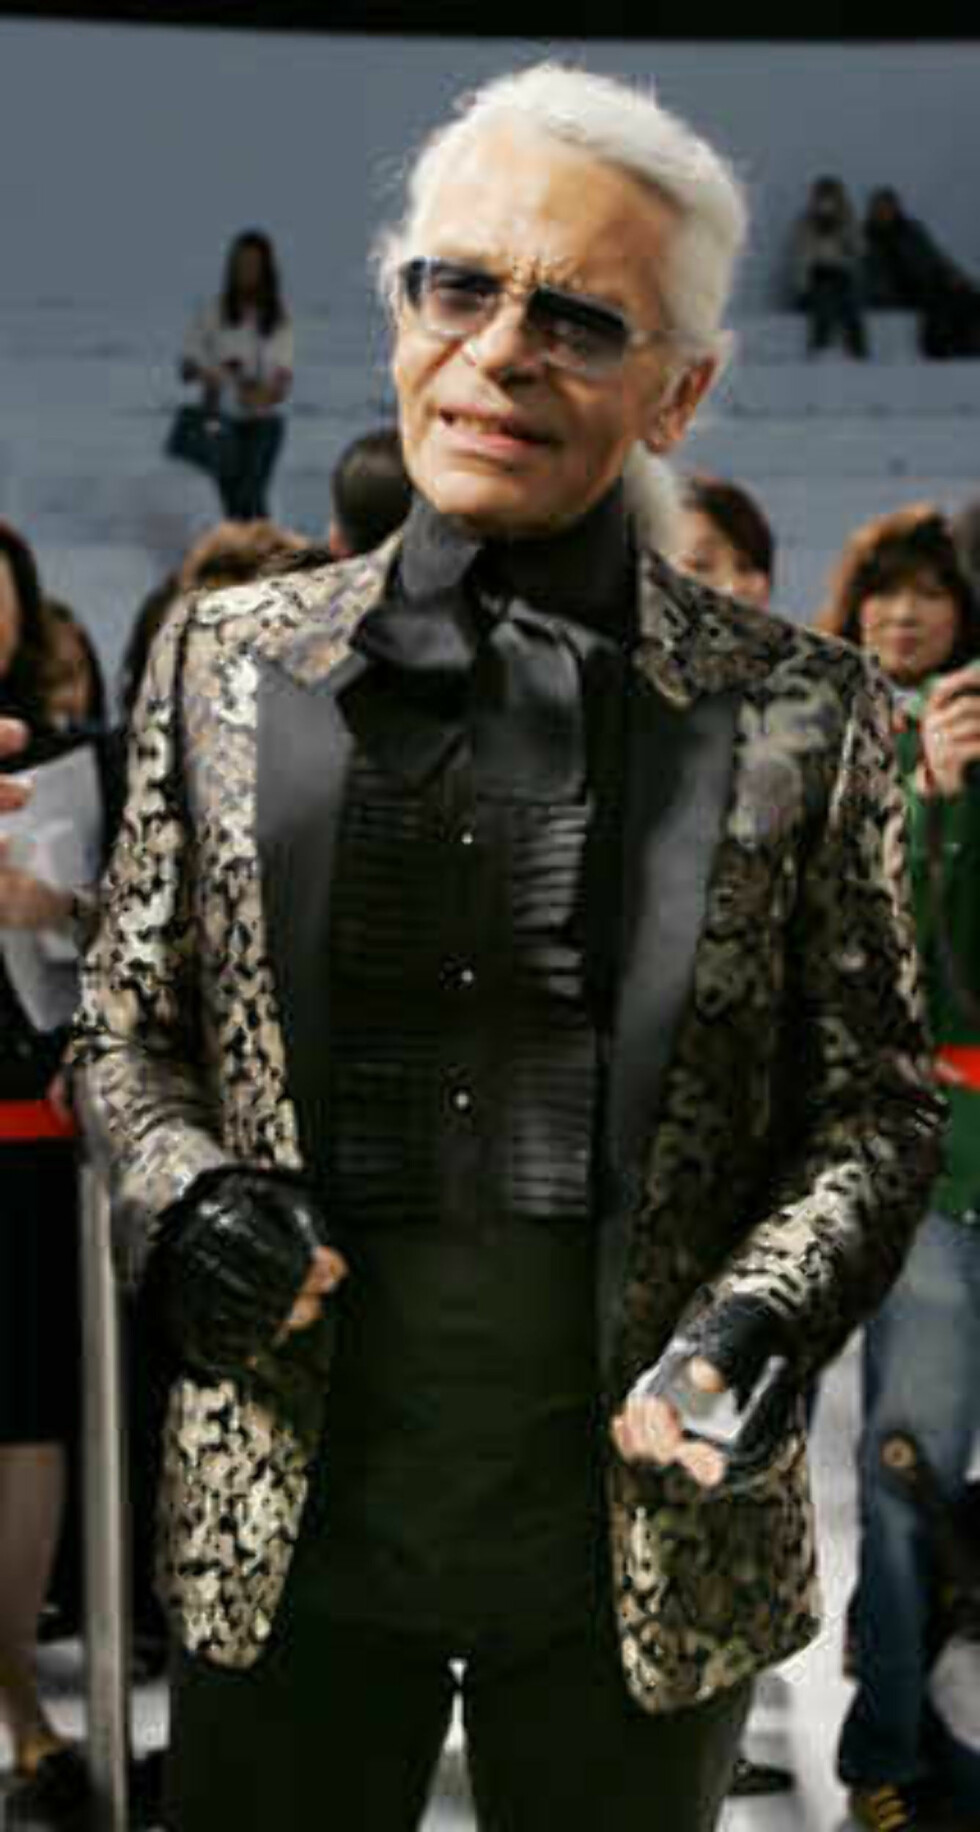 German designer Karl Lagerfeld, left, speaks after the Chanel 2006 Spring-Summer Haute Couture fashion show in Hong Kong Friday, March 24, 2006.  (AP Photo/Kin Cheung) Foto: AP